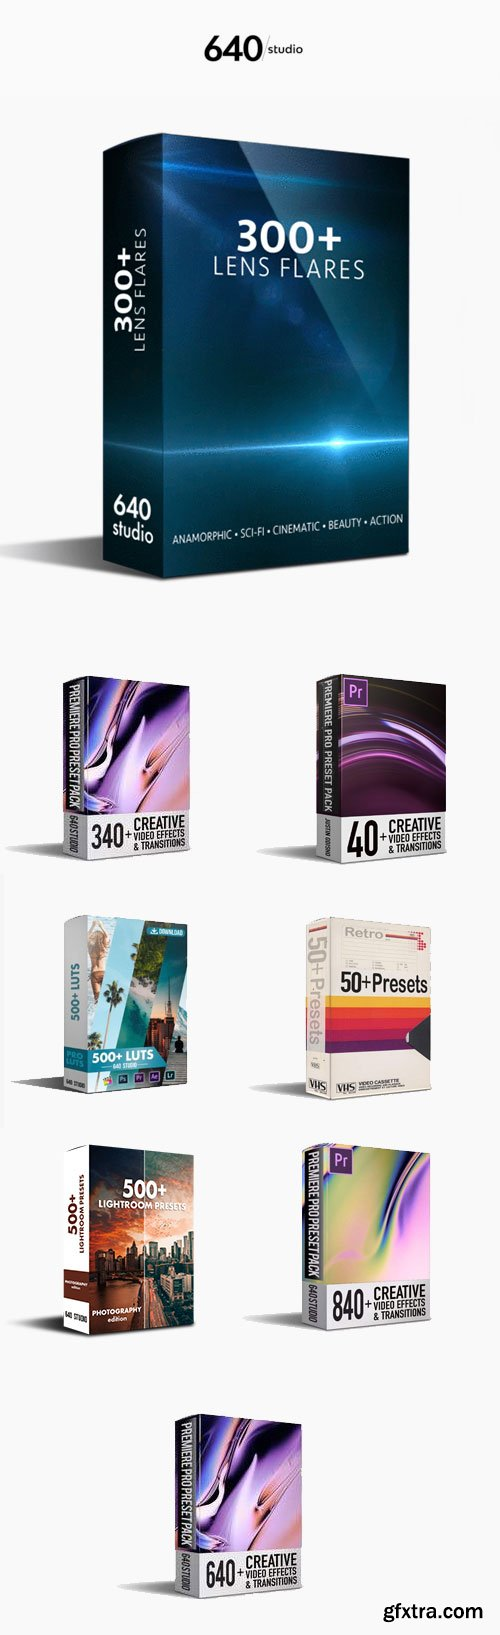 640Studio - All Products Bundle! For GFXTRA Lover'S